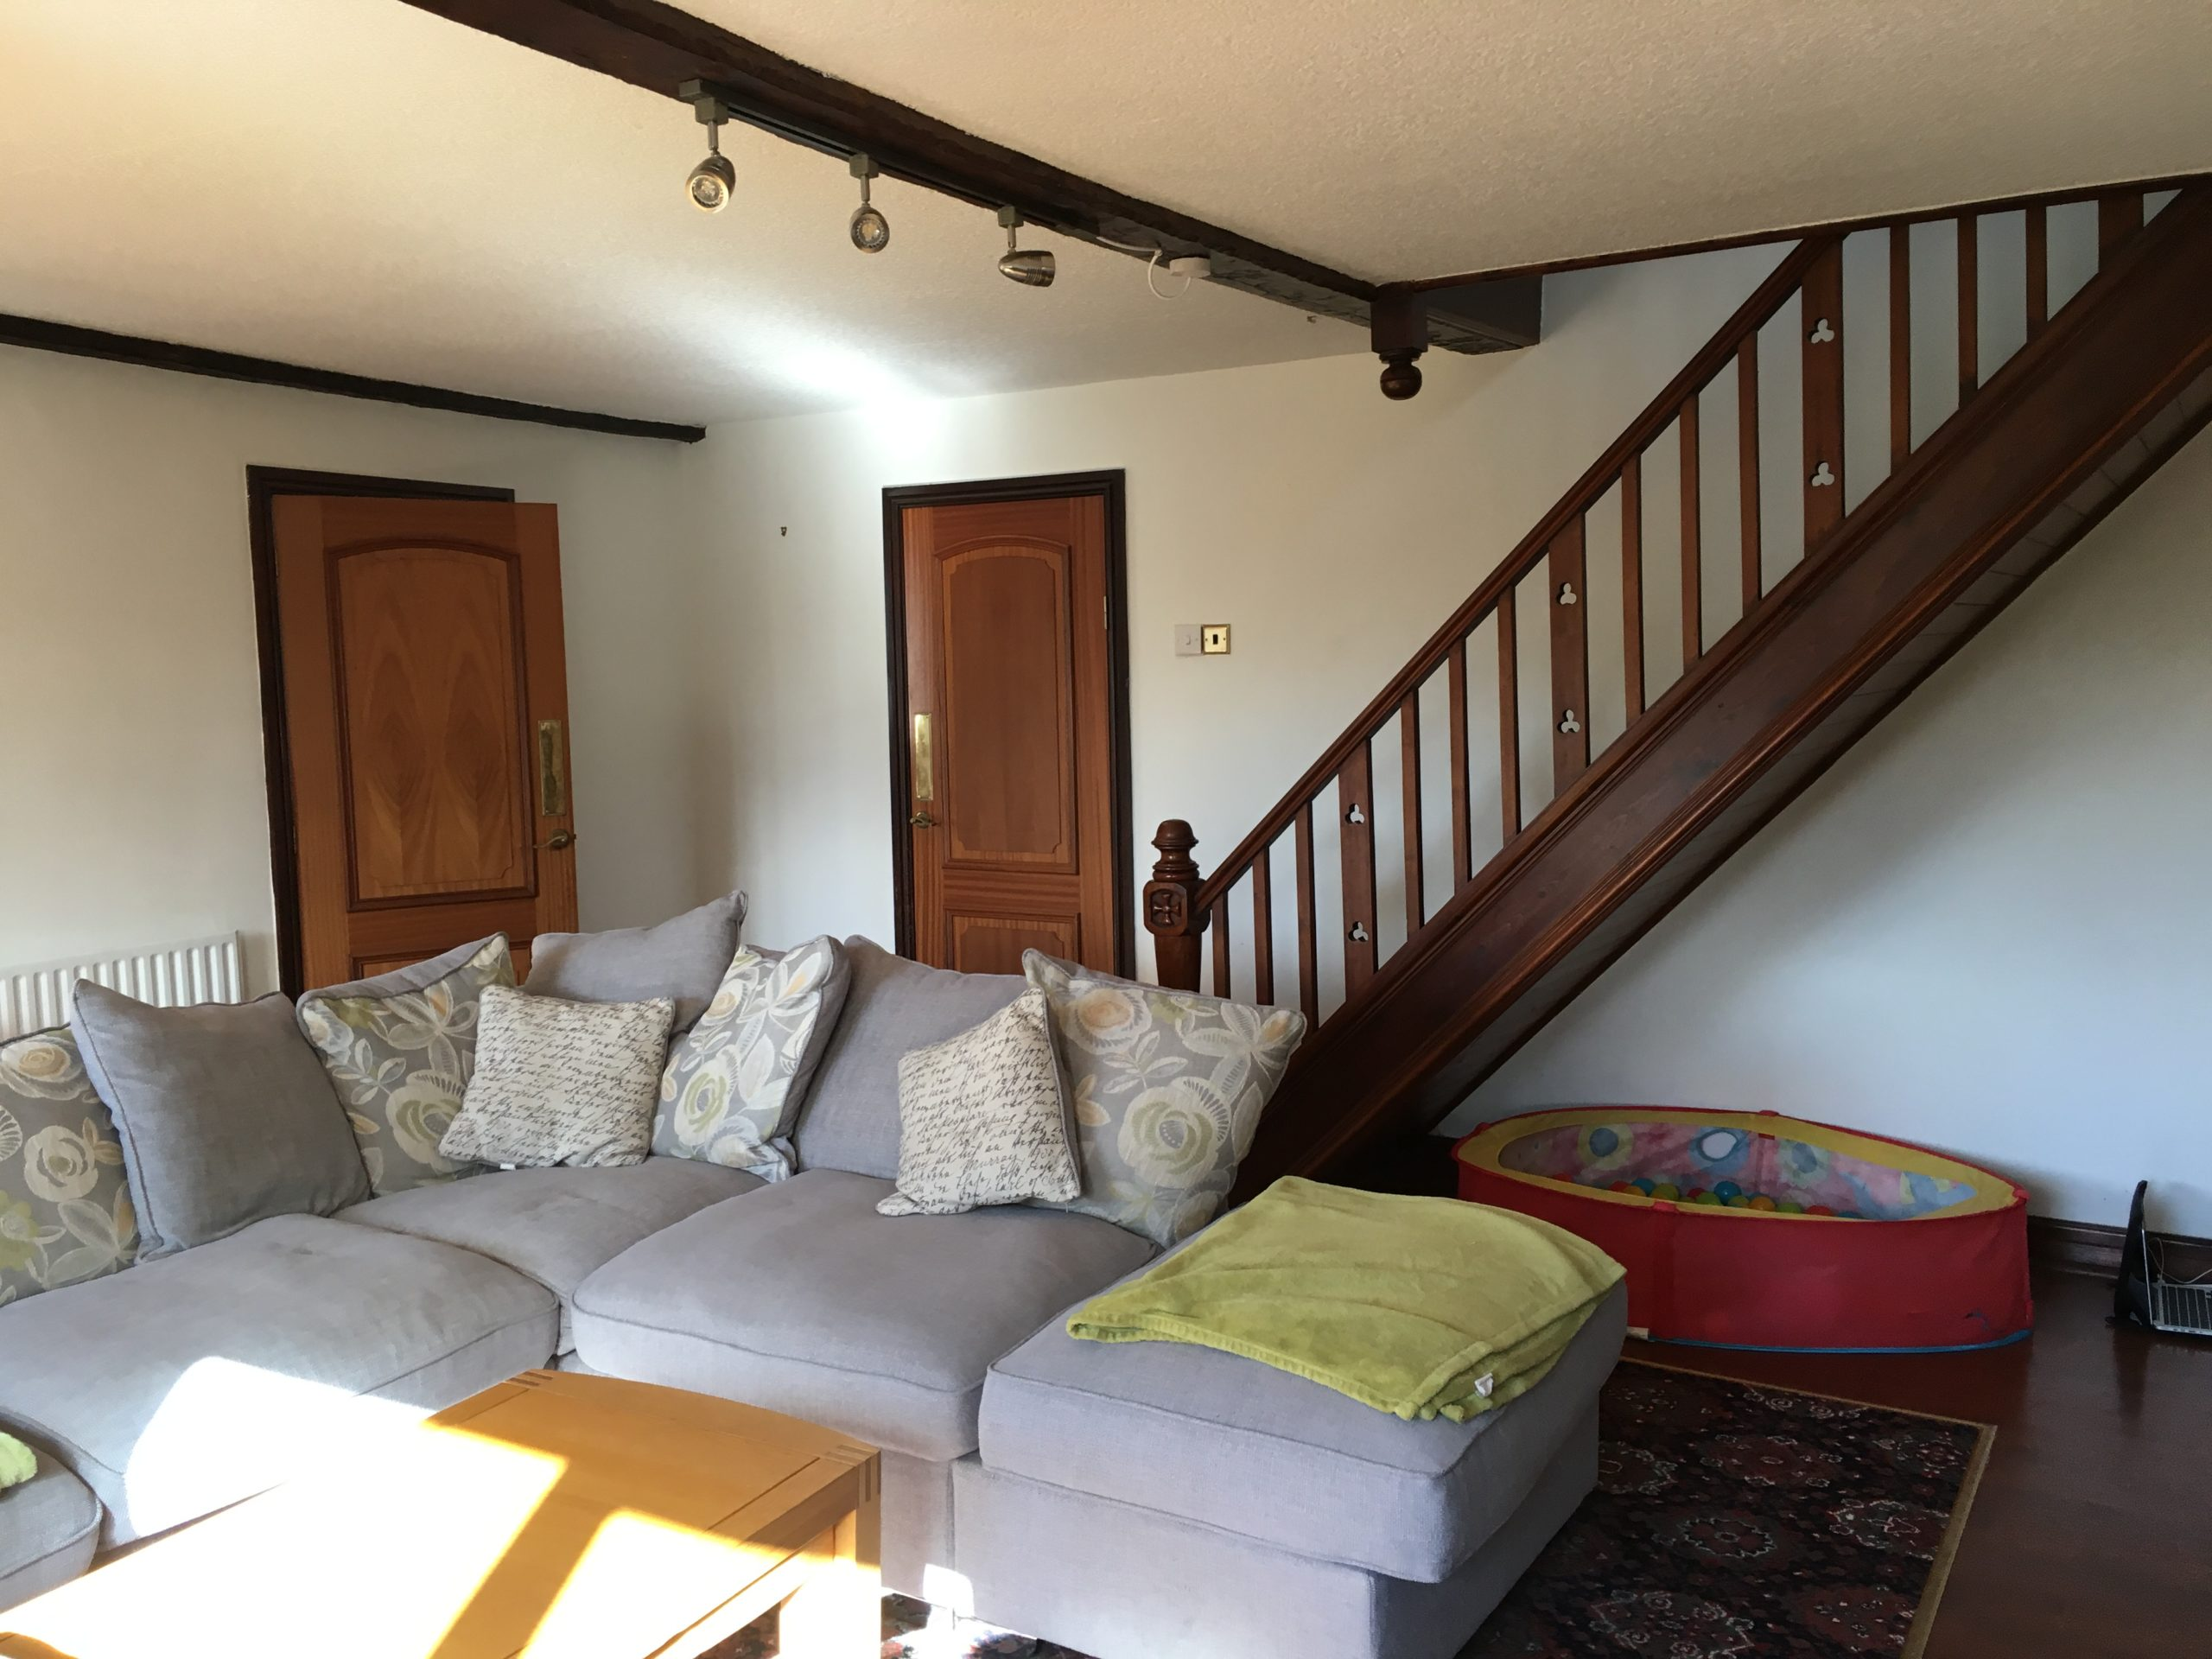 TV room - before image of the snug designed by Amelia Wilson Interiors Ltd